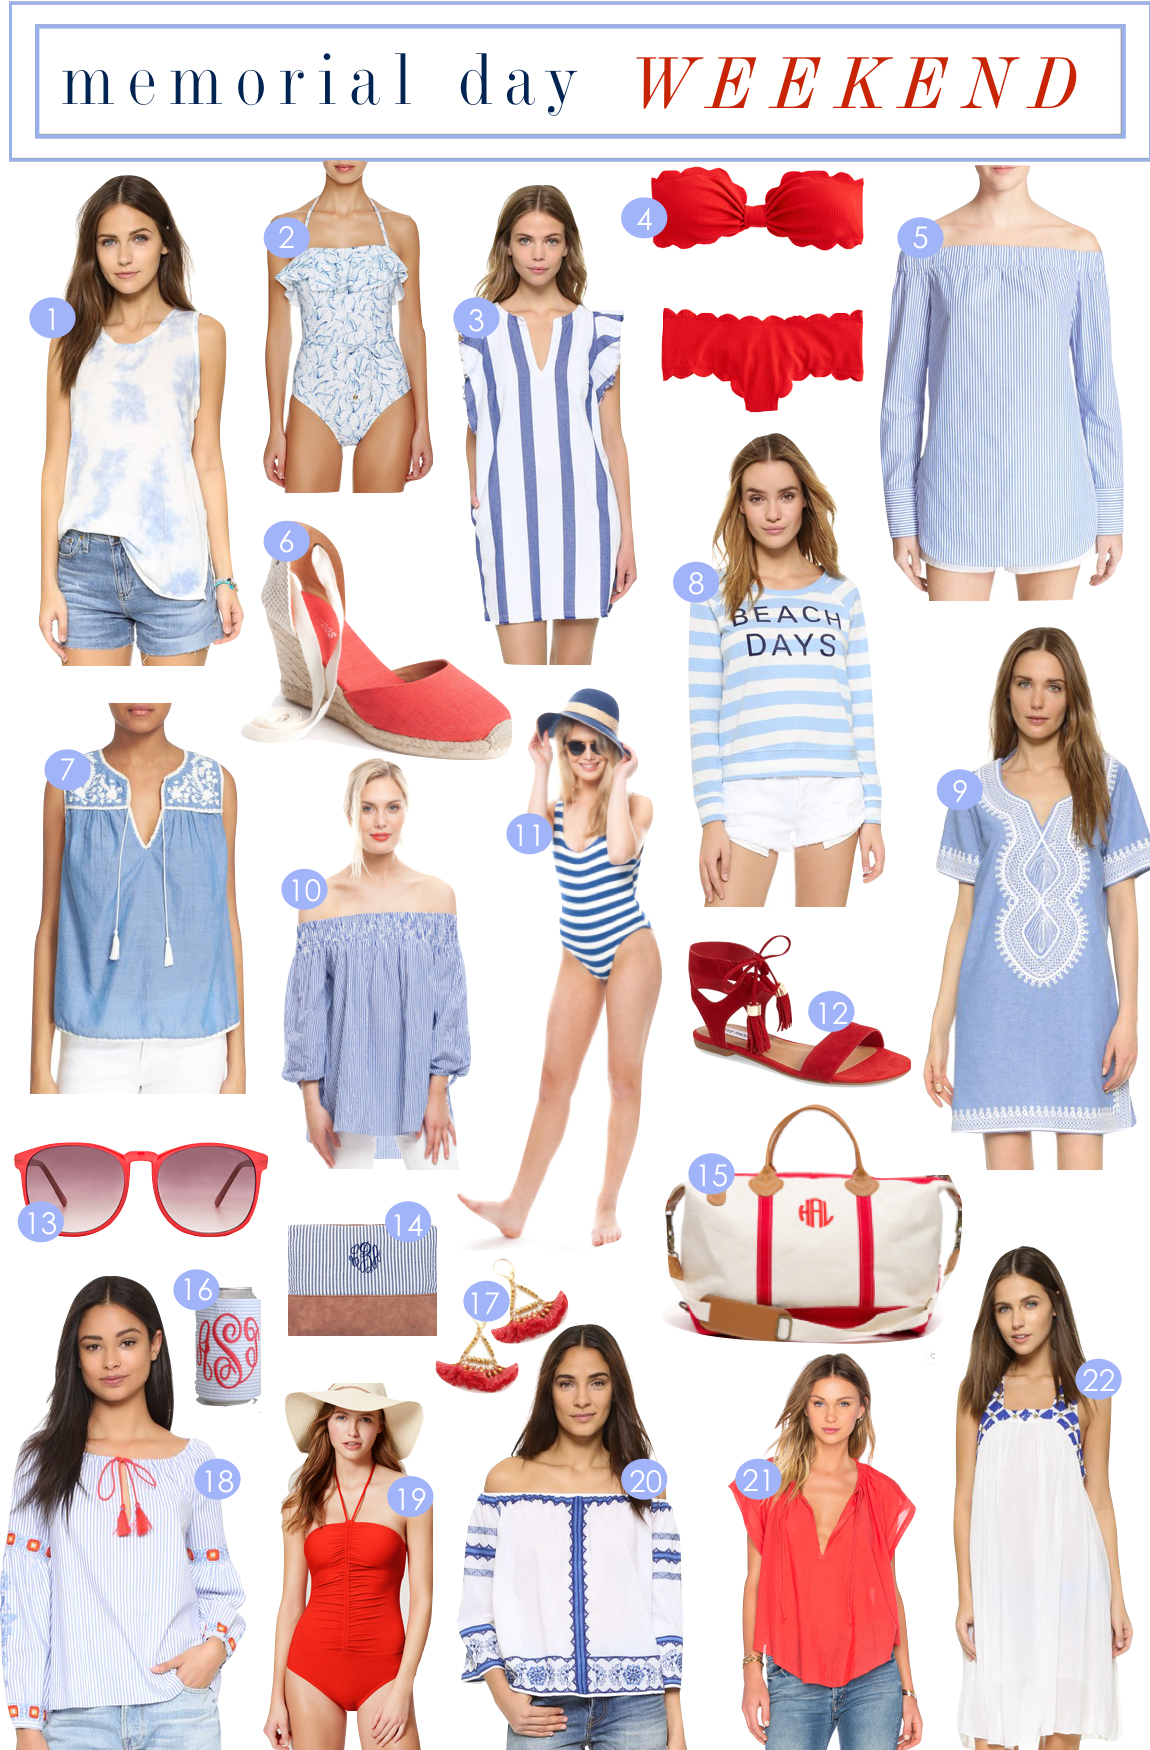 Memorial Day Weekend | Kiki's List